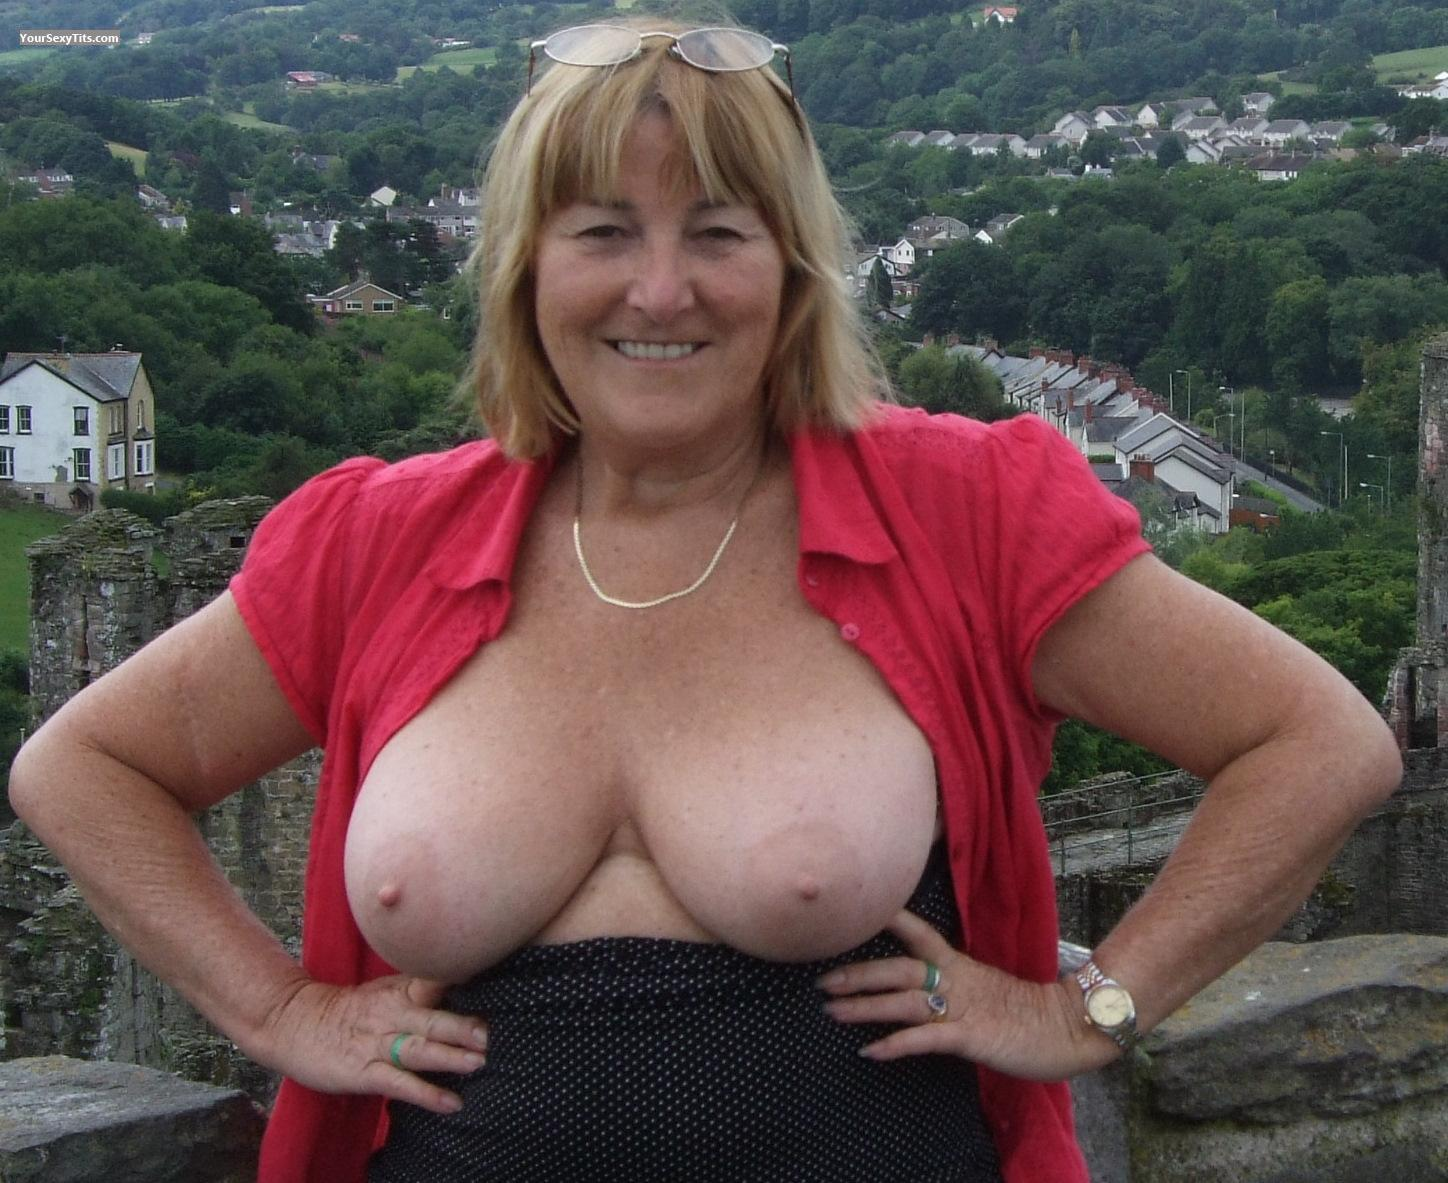 Tit Flash: Big Tits - Topless M from United Kingdom